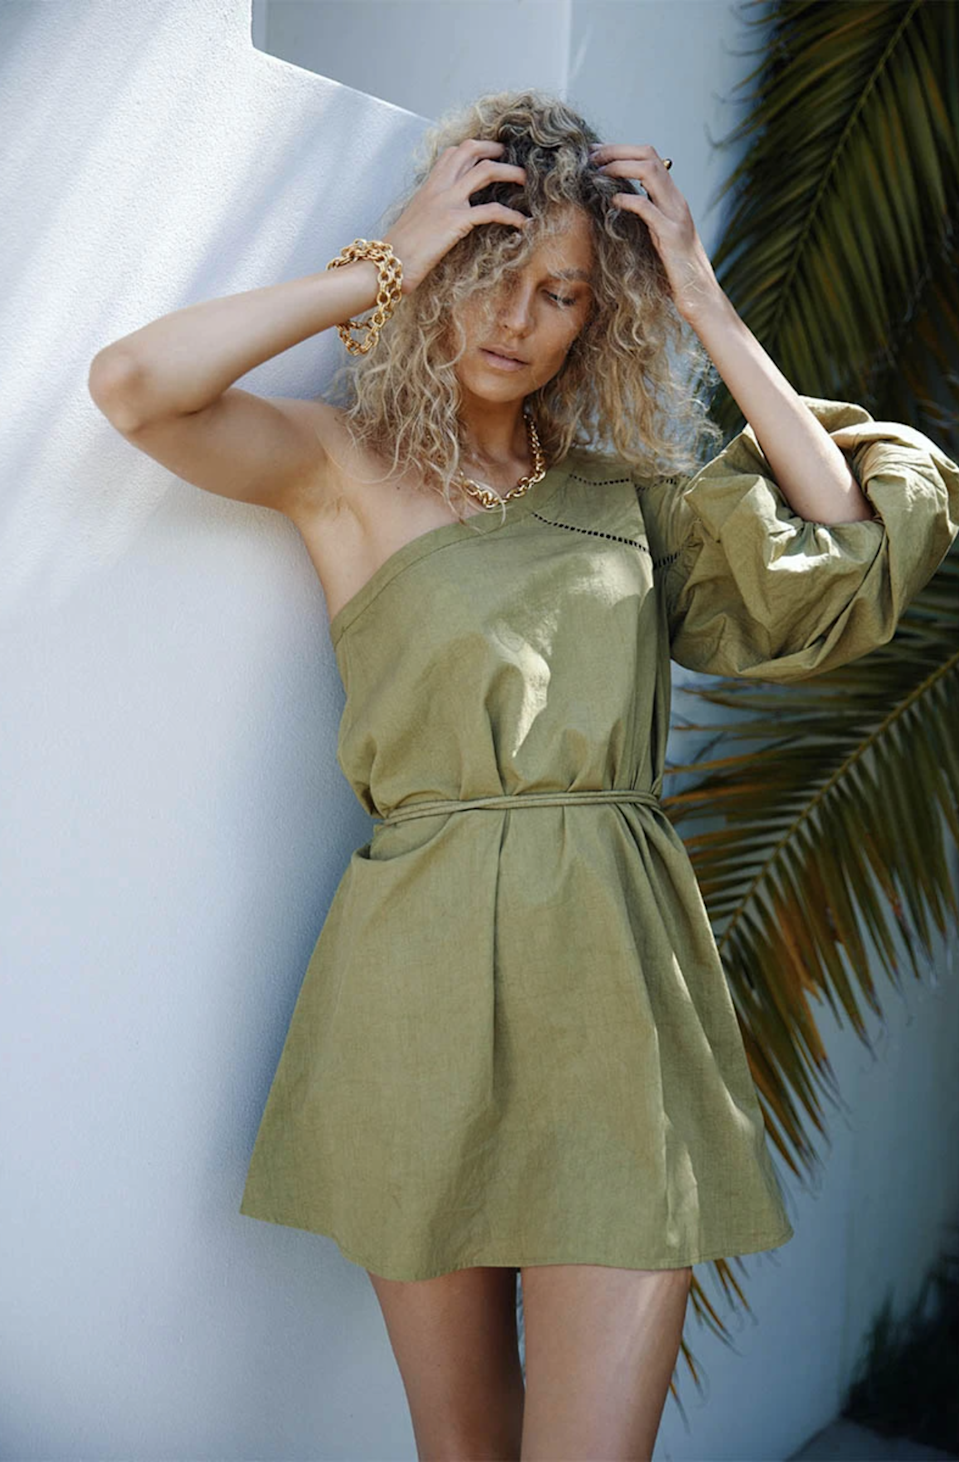 """This slouchy linen dress is begging to be worn to a beach wedding. Psst…need more summer wedding dress inspo? We've got plenty <a href=""""https://www.glamour.com/gallery/summer-wedding-guest-dresses?mbid=synd_yahoo_rss"""" rel=""""nofollow noopener"""" target=""""_blank"""" data-ylk=""""slk:here"""" class=""""link rapid-noclick-resp"""">here</a>. $142, Maurie & Eve. <a href=""""https://www.maurieandeve.com/collections/beach-dresses/products/poplin-mini-dress-ol"""" rel=""""nofollow noopener"""" target=""""_blank"""" data-ylk=""""slk:Get it now!"""" class=""""link rapid-noclick-resp"""">Get it now!</a>"""